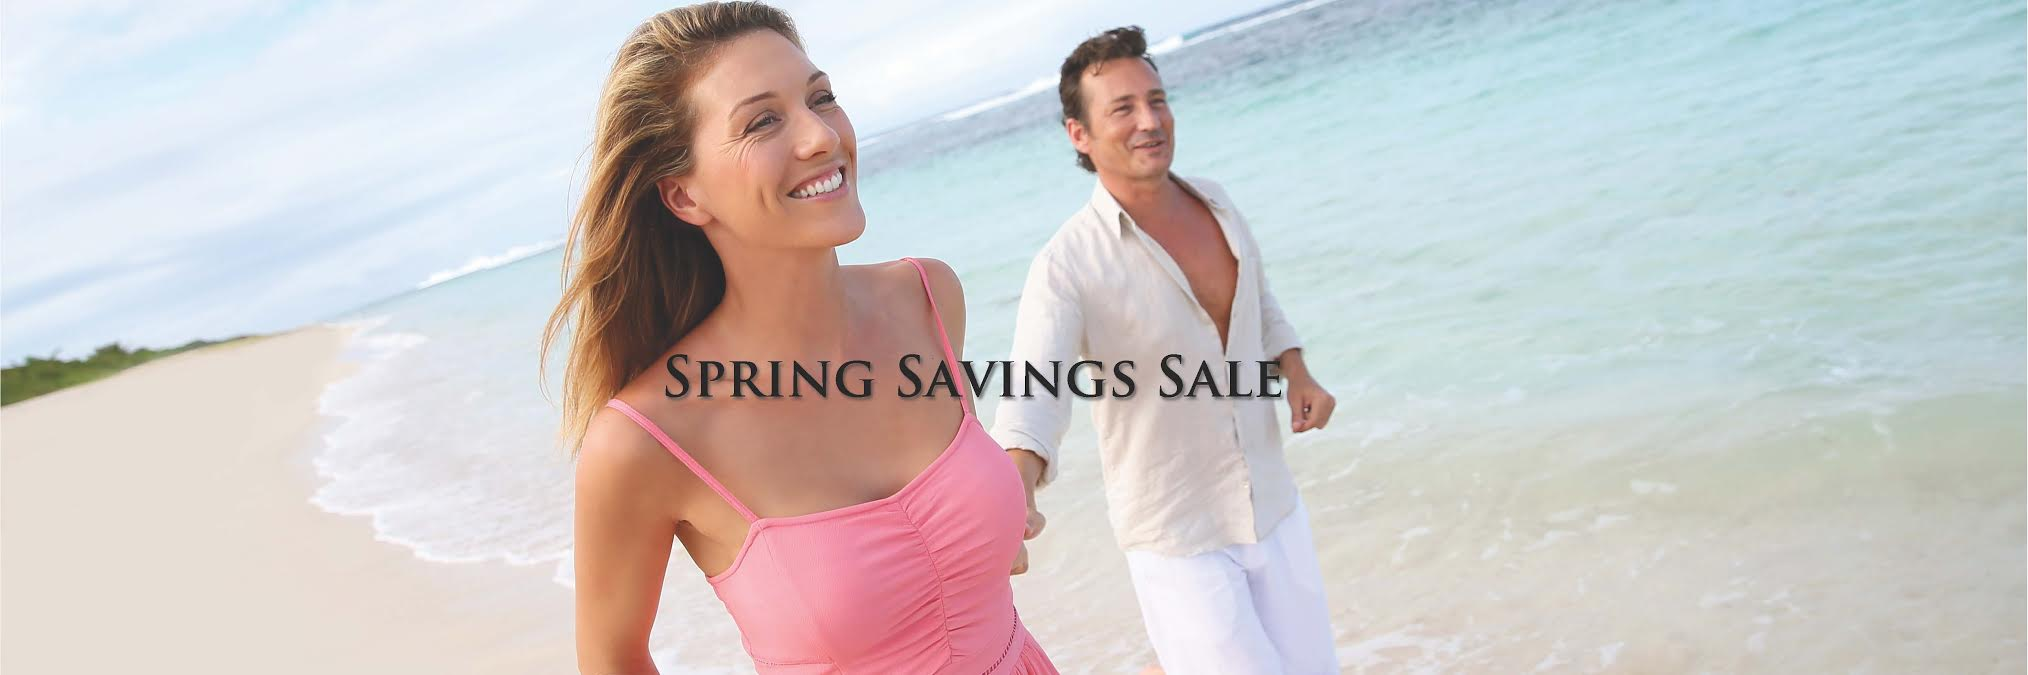 SHOP ON CAPTIVA AND SAVE!